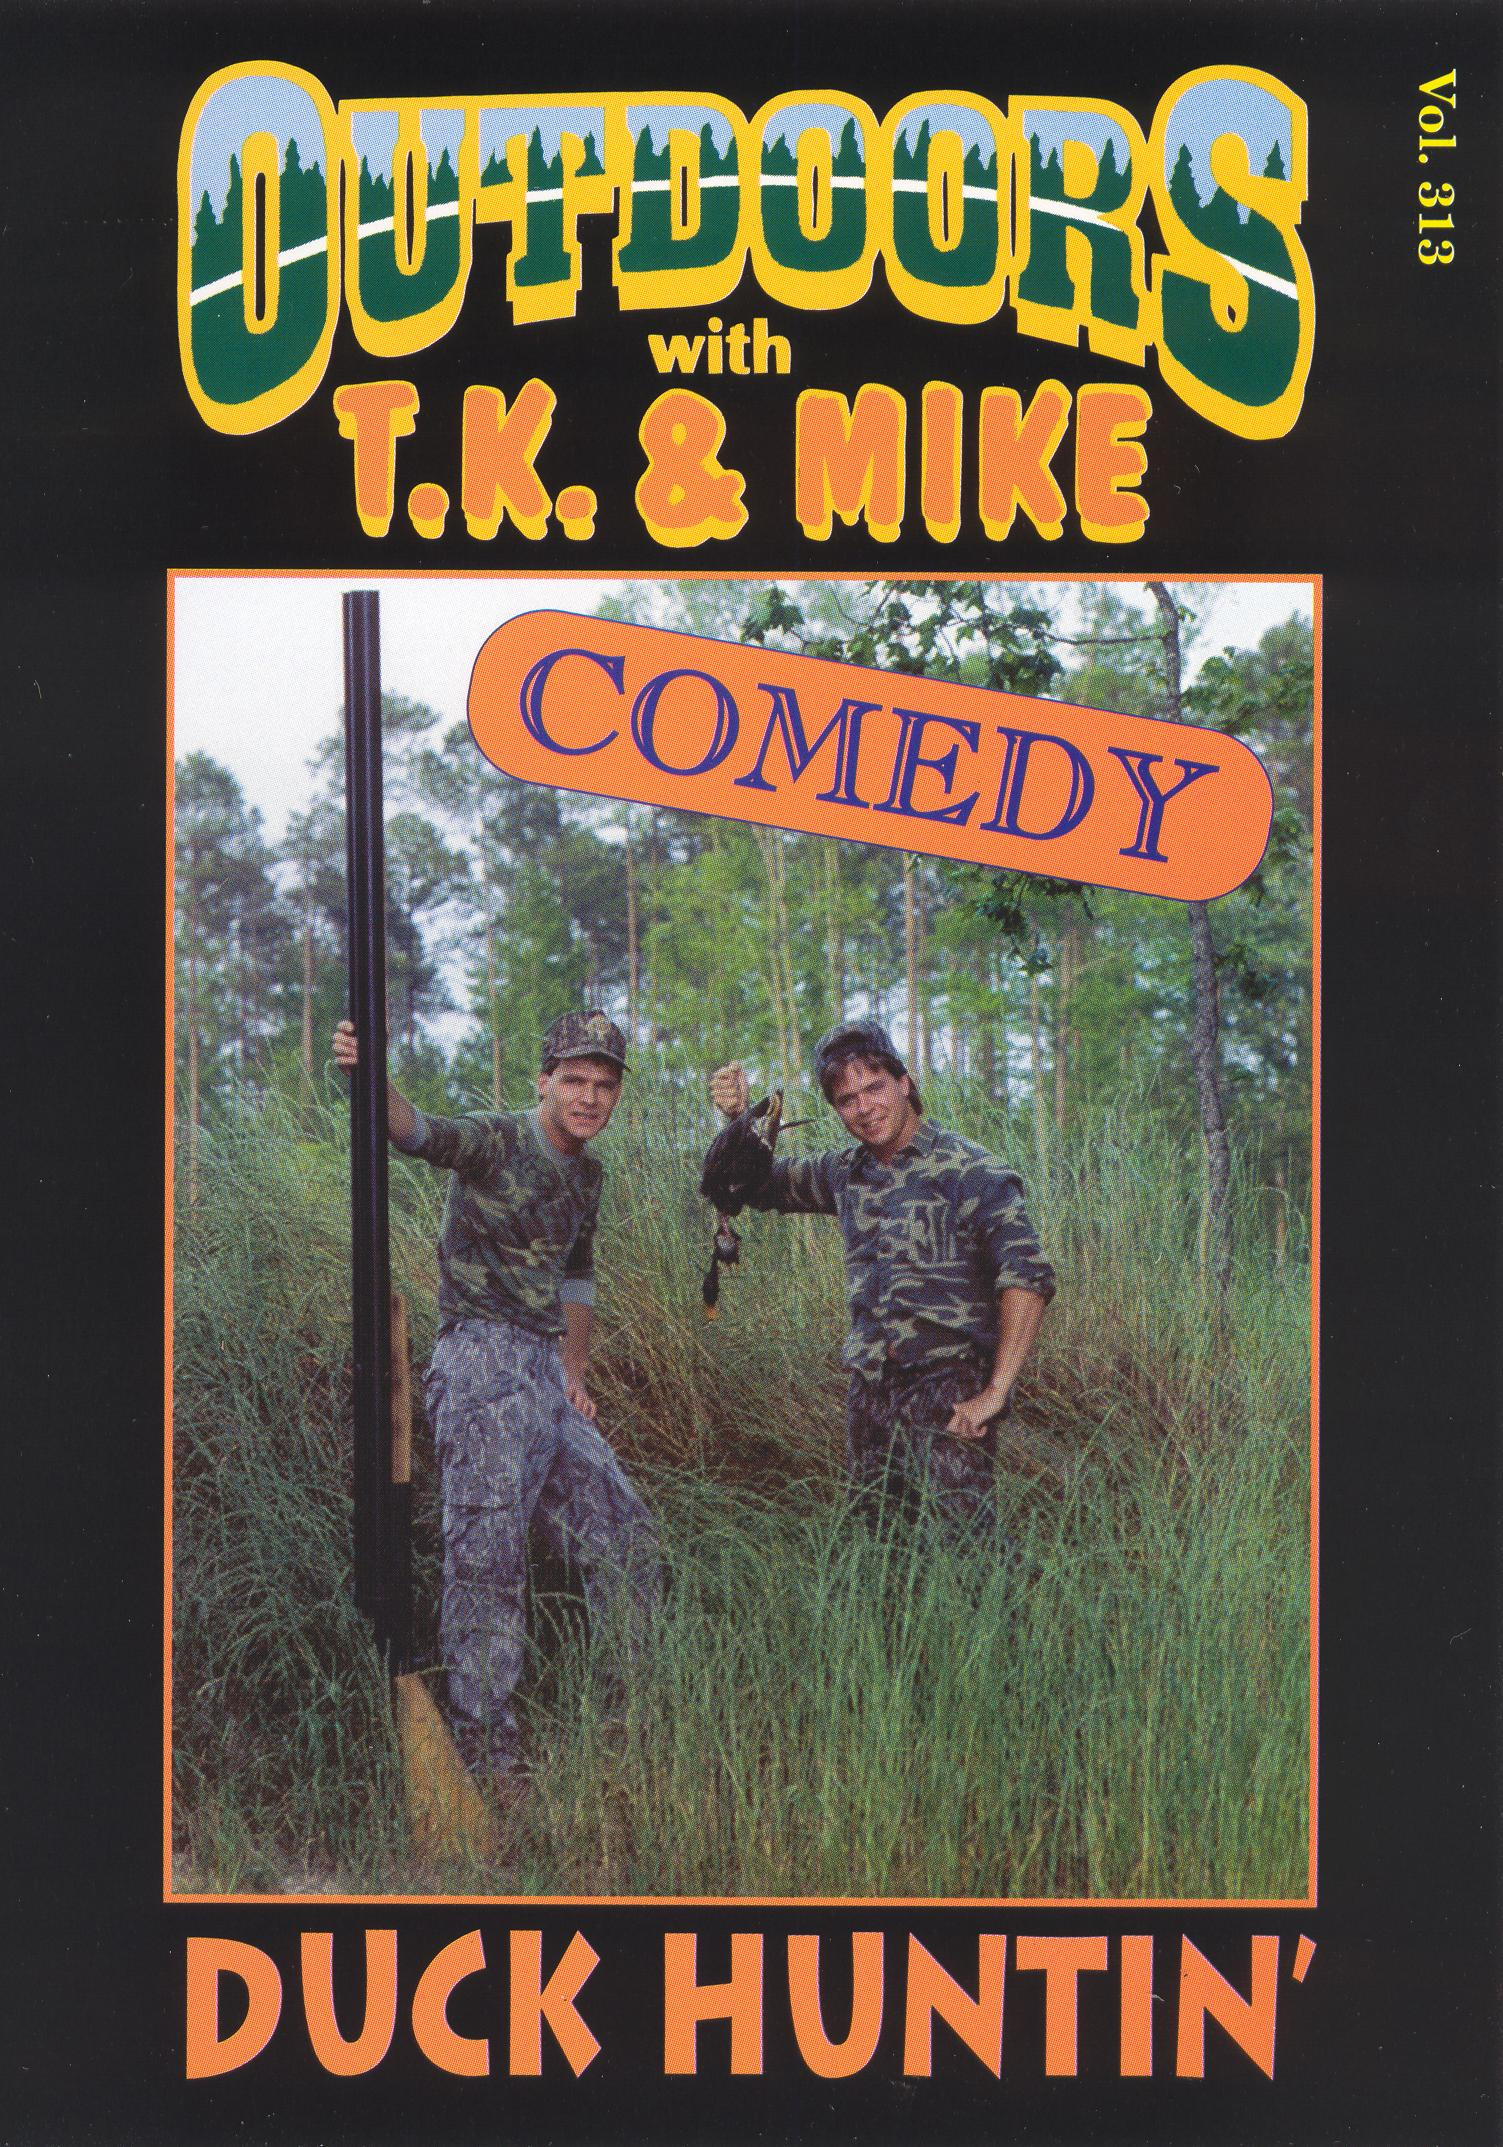 T.J. and Mike: Duck Hunting